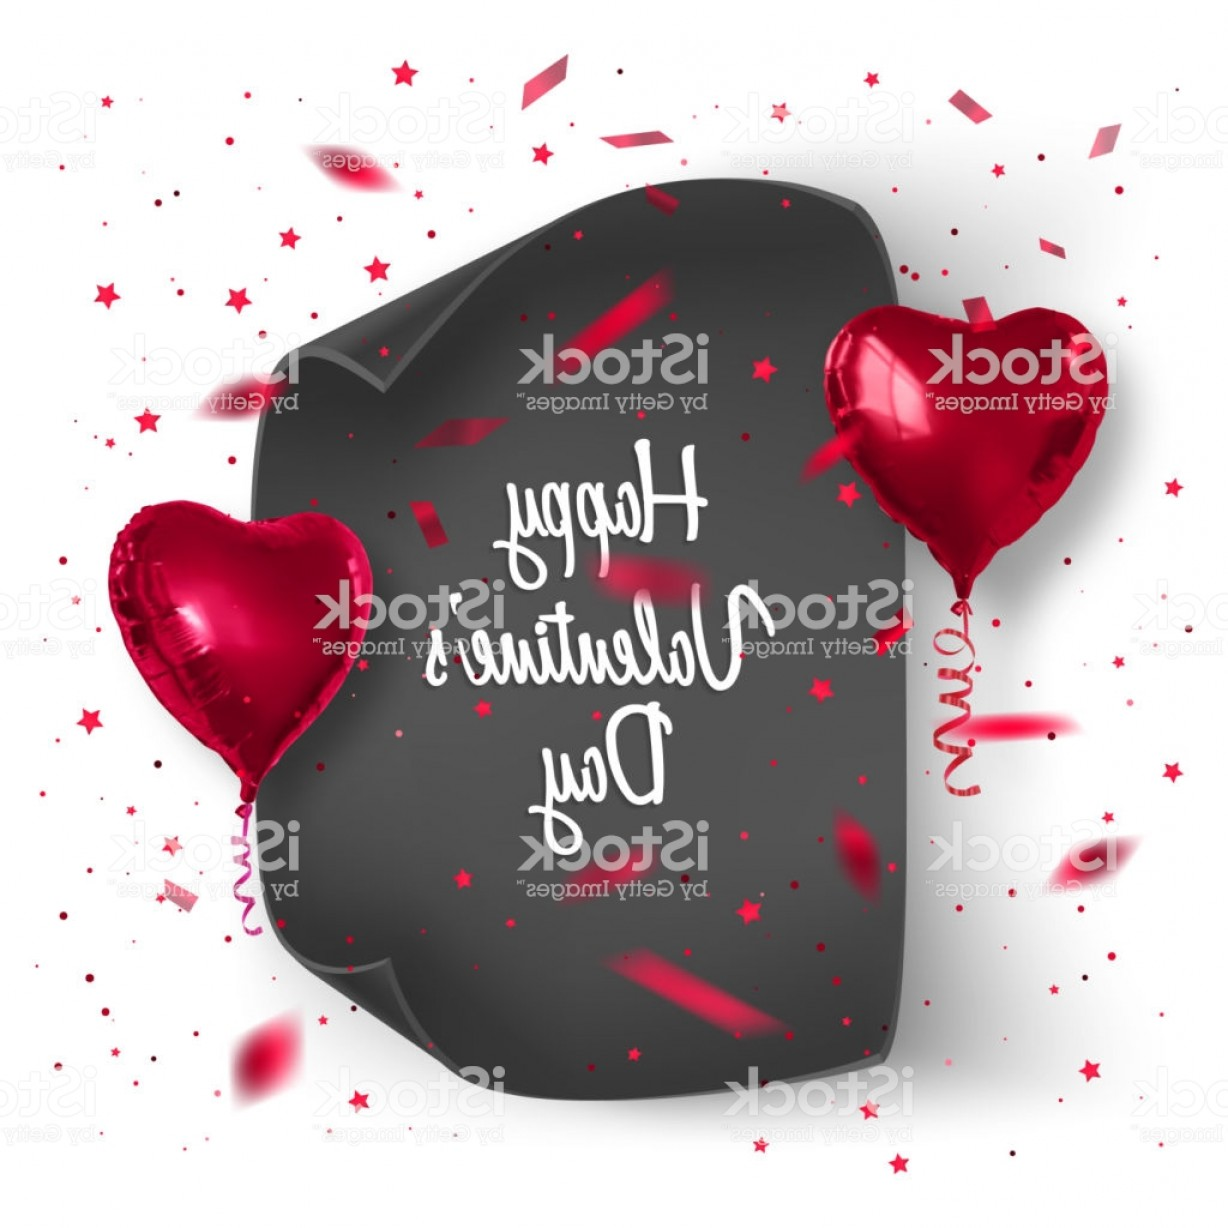 Balloons Vector Wallpaper: Valentines Day Card Background With Confetti And Realistic Balloons Vector Gm